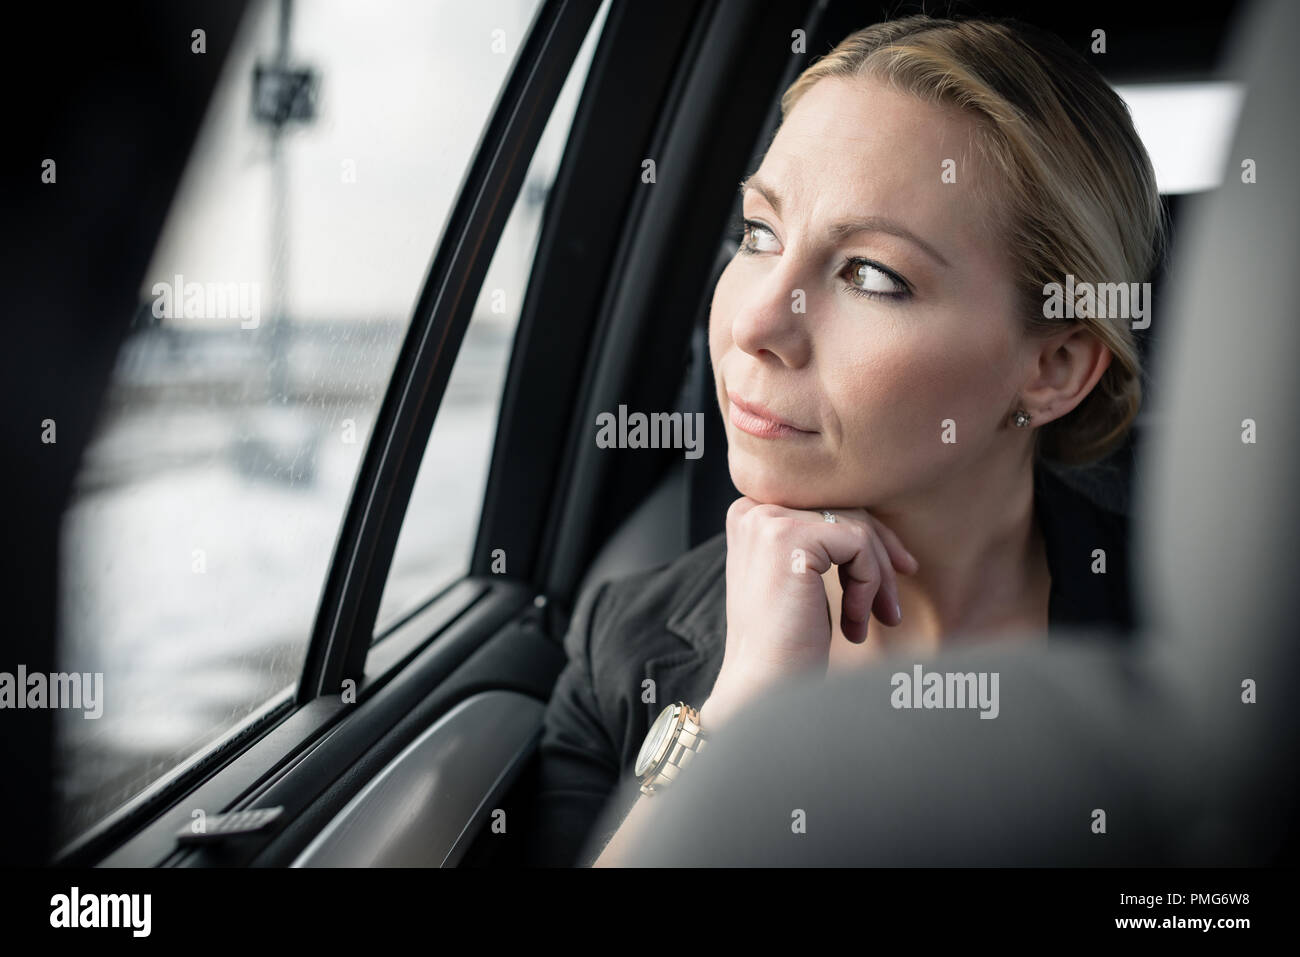 Thoughtful businesswoman travelling in car - Stock Image